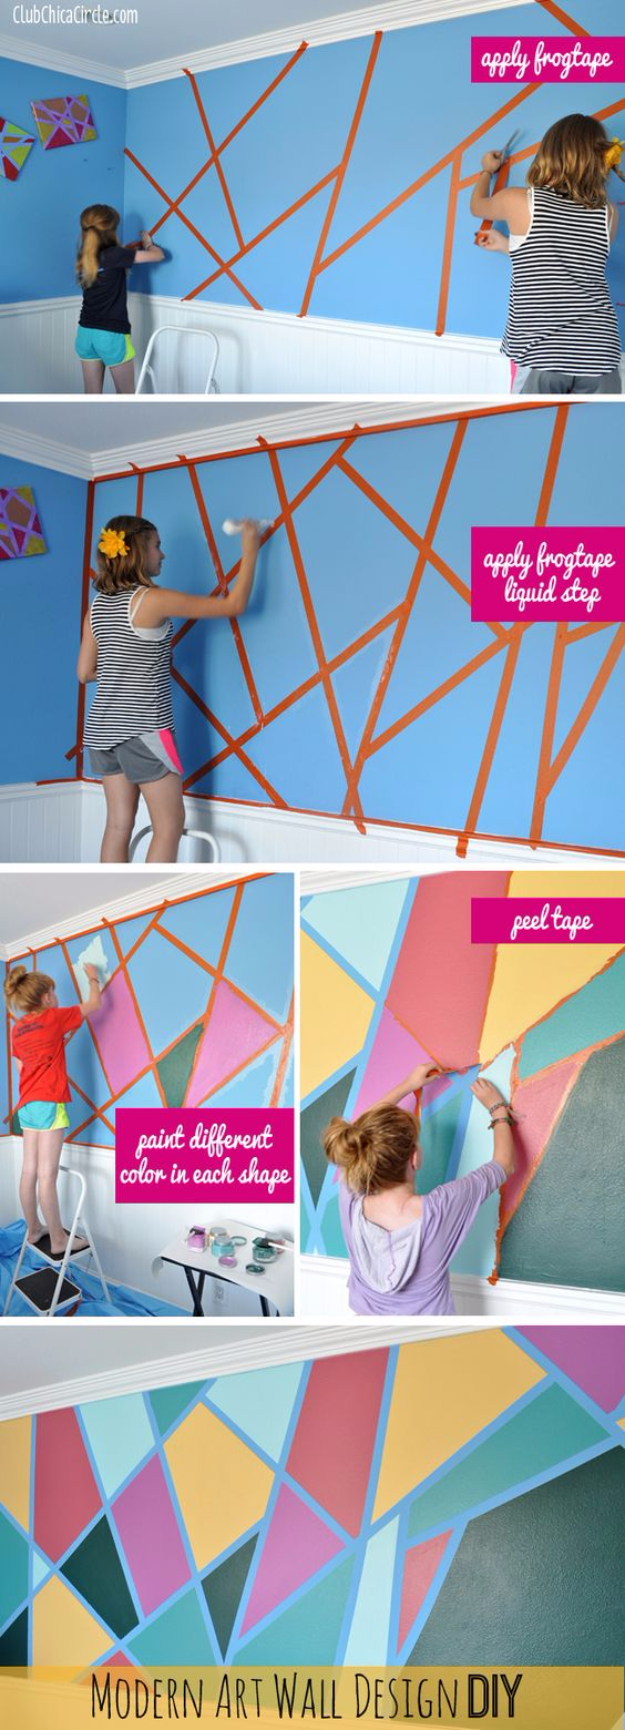 34 cool ways to paint walls diy projects for teens - Cool room painting ideas ...